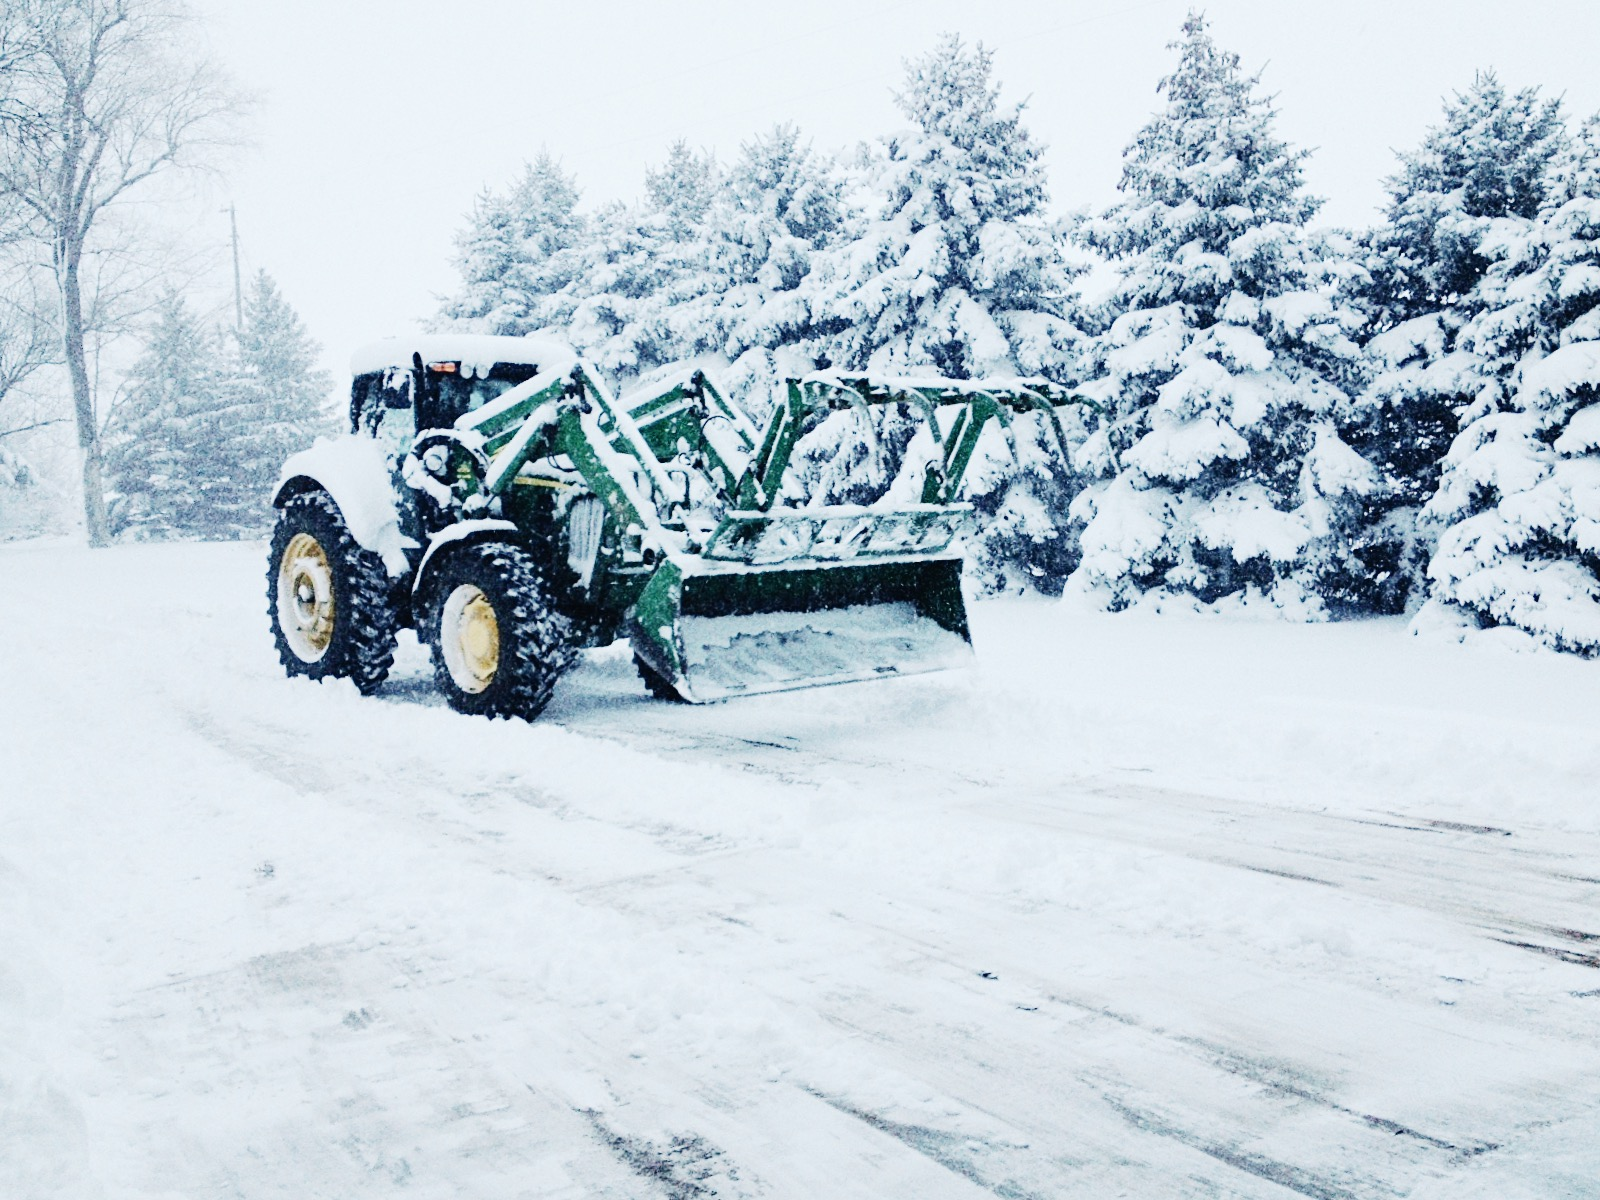 Plowing snow on the Greenway farm in the winter.